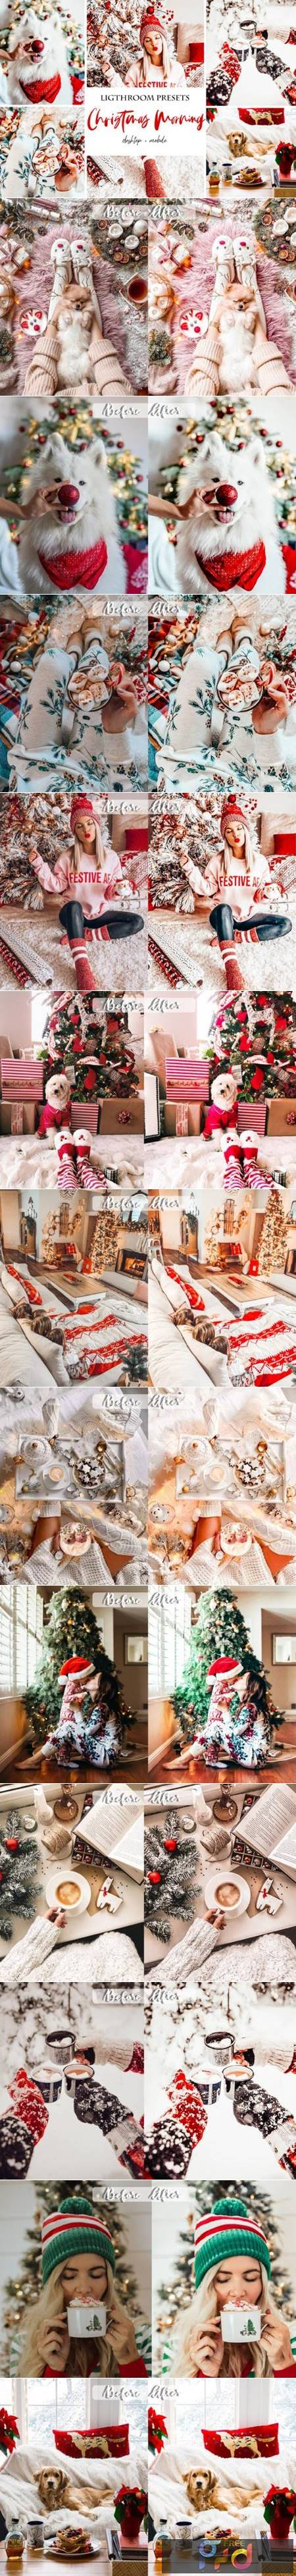 Christmas Morning Lightroom Presets 5840881 1